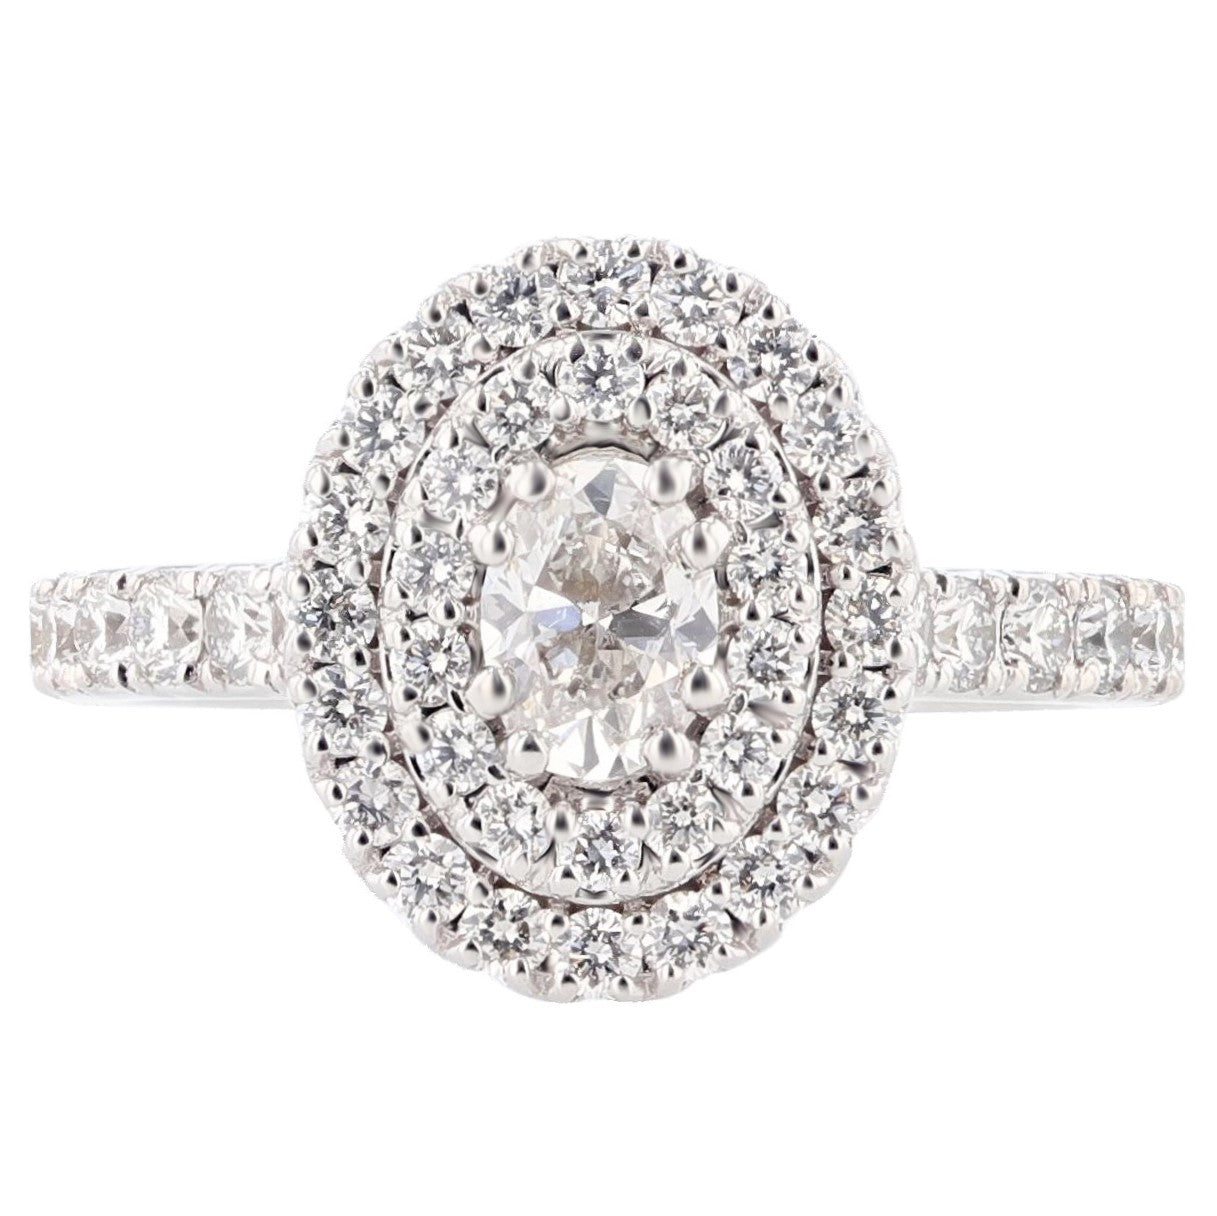 14K White Gold Oval Diamond Double Halo Engagement Ring - Nazarelle